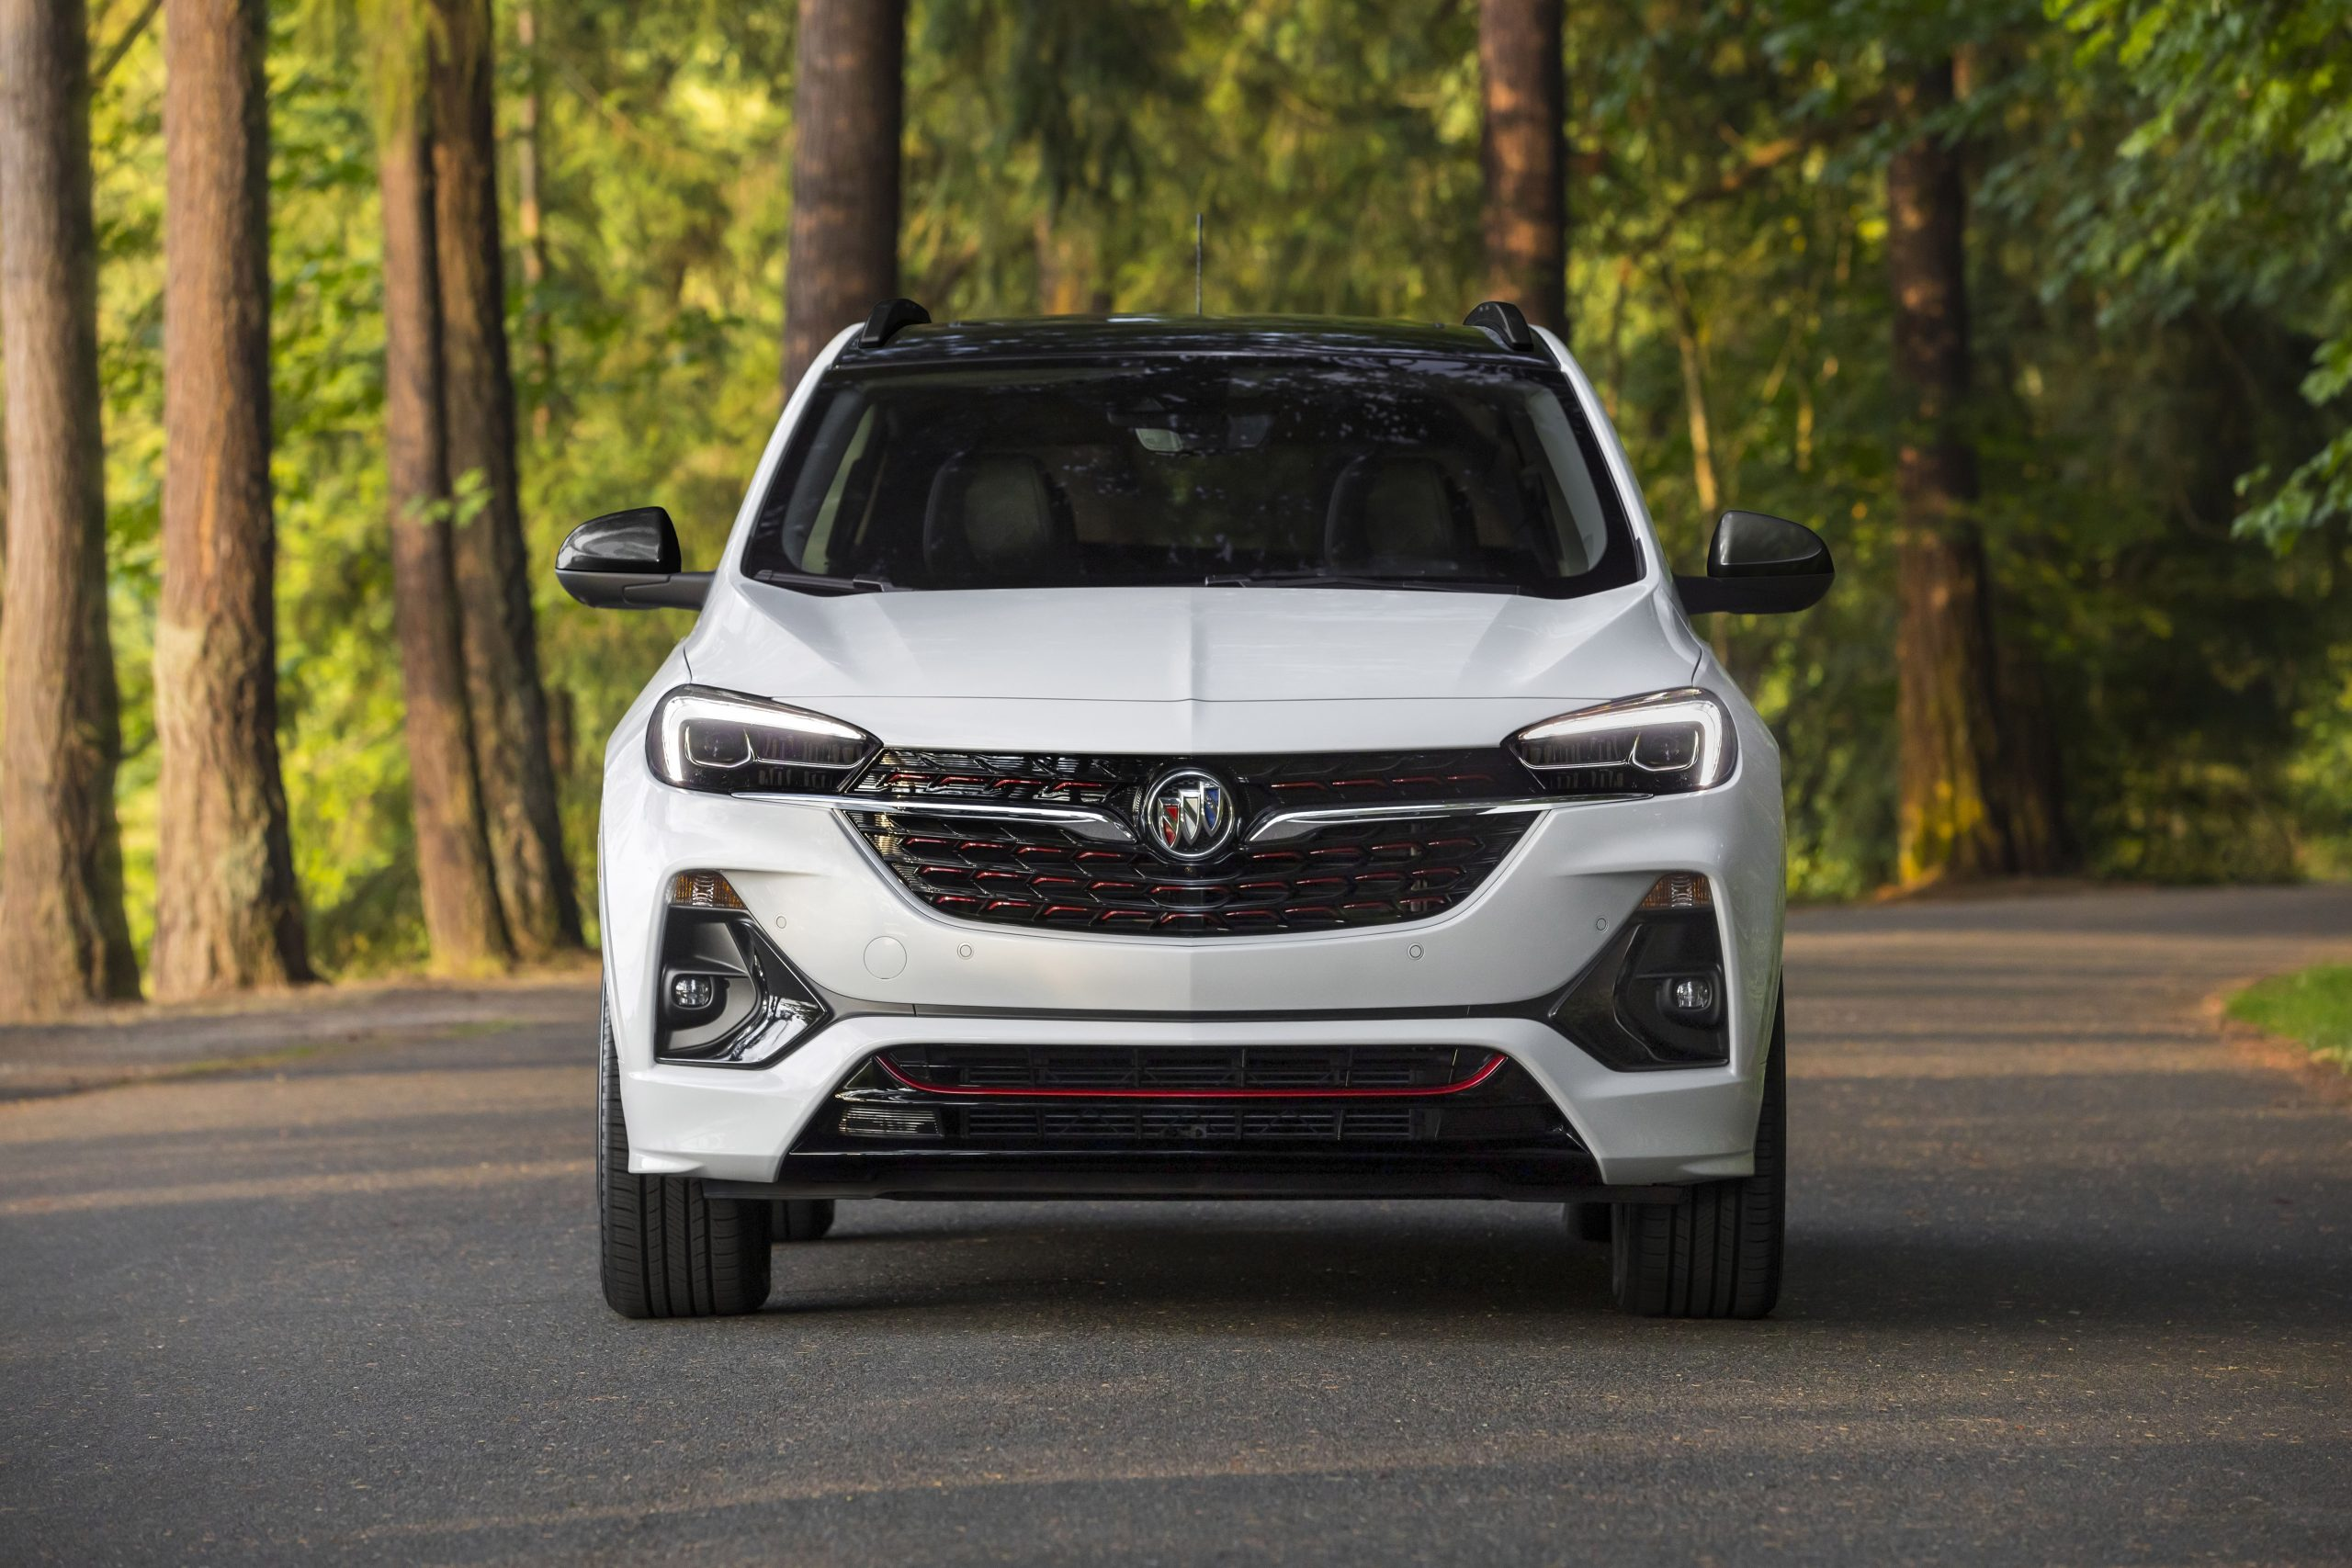 Buick Encore Gx Debuts In La | Gm Authority 2022 Buick Encore Gx Pictures, Ratings, Road Test